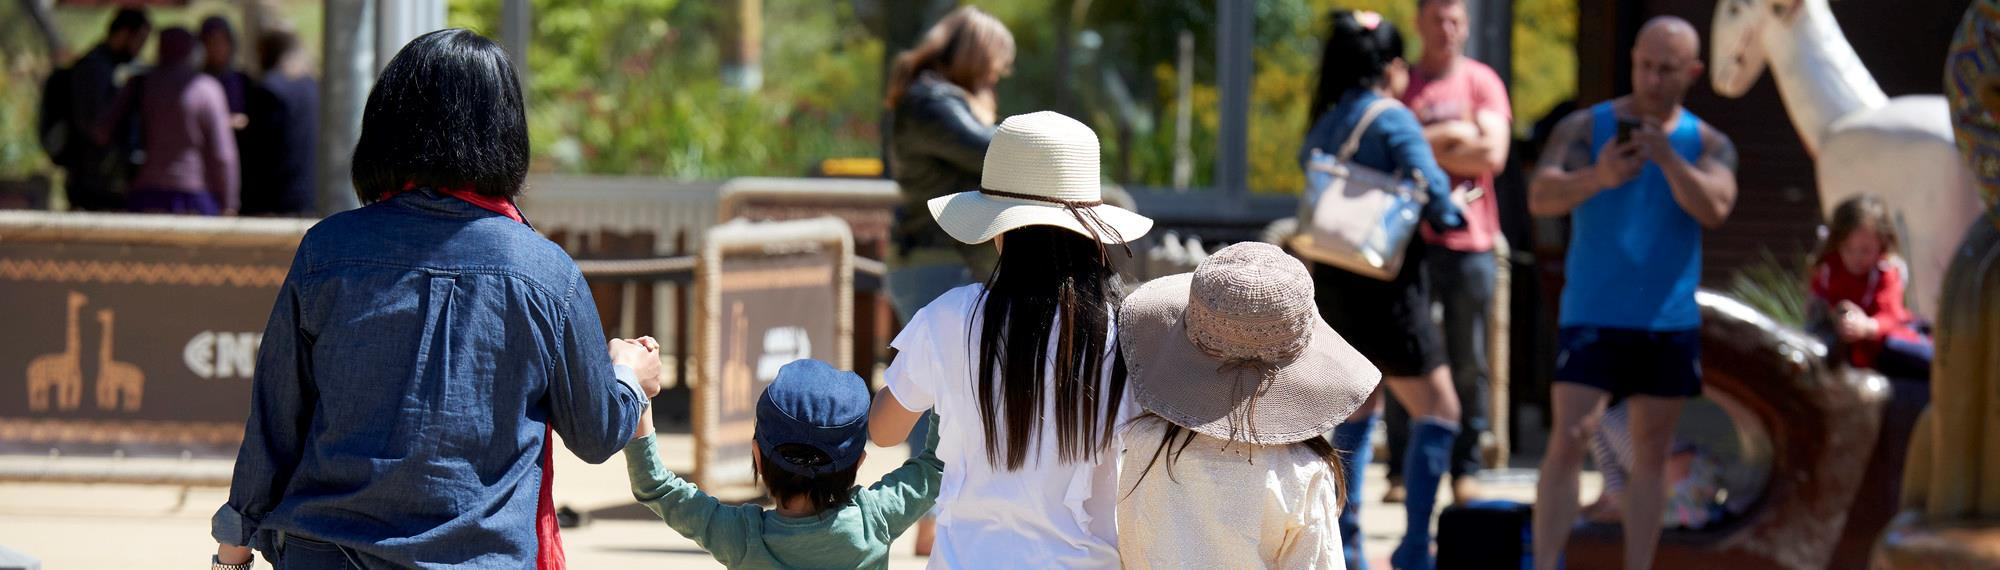 Family day out at Werribee Open Range Zoo. Visitors walking towards the entrance gate holding hands with young children.